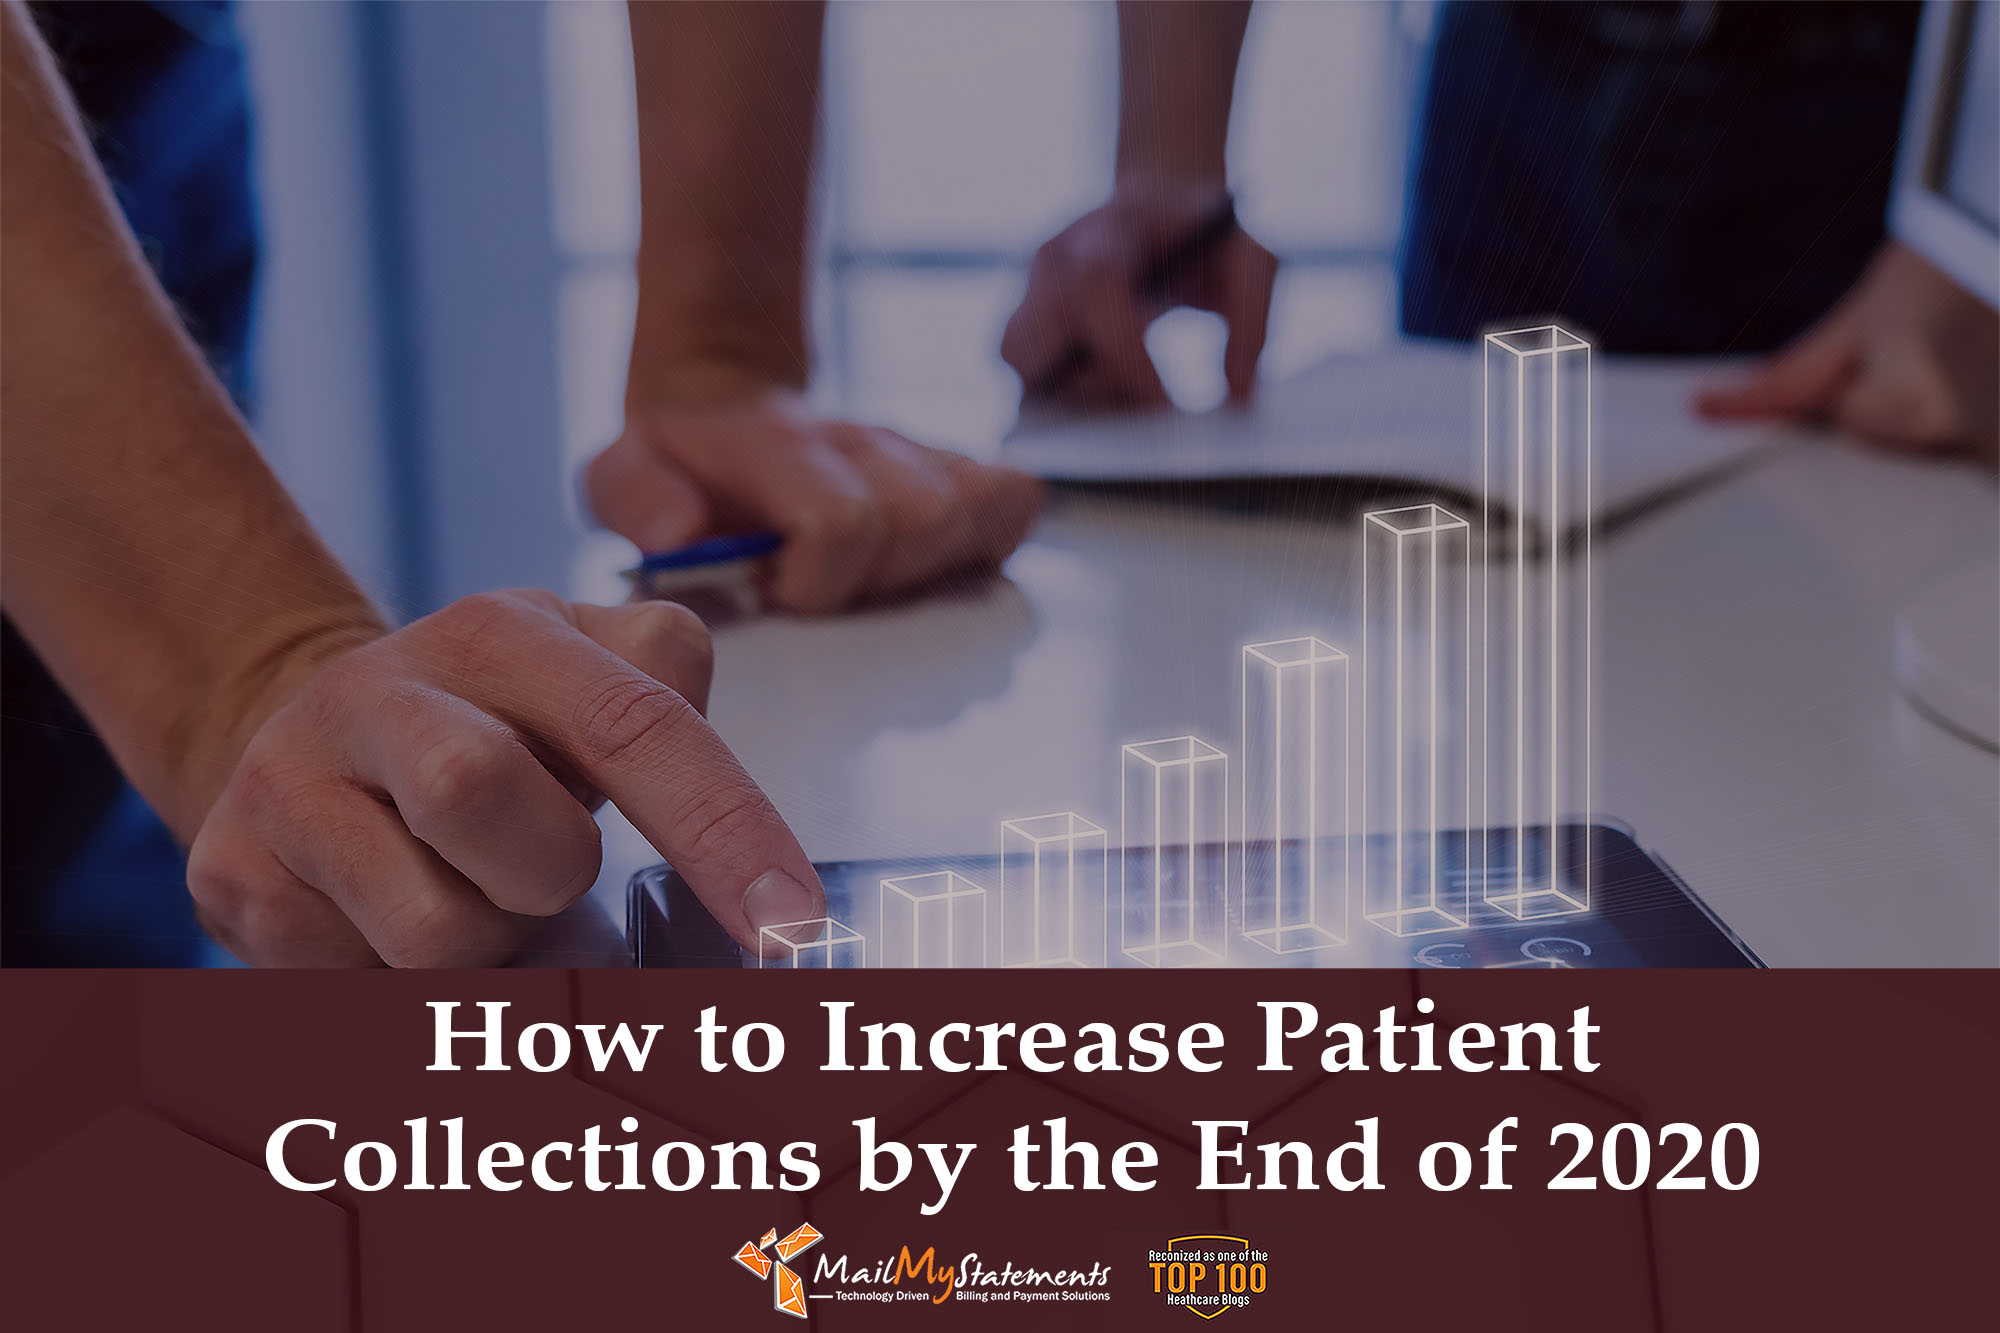 How to Increase Patient Collections by the End of 2020